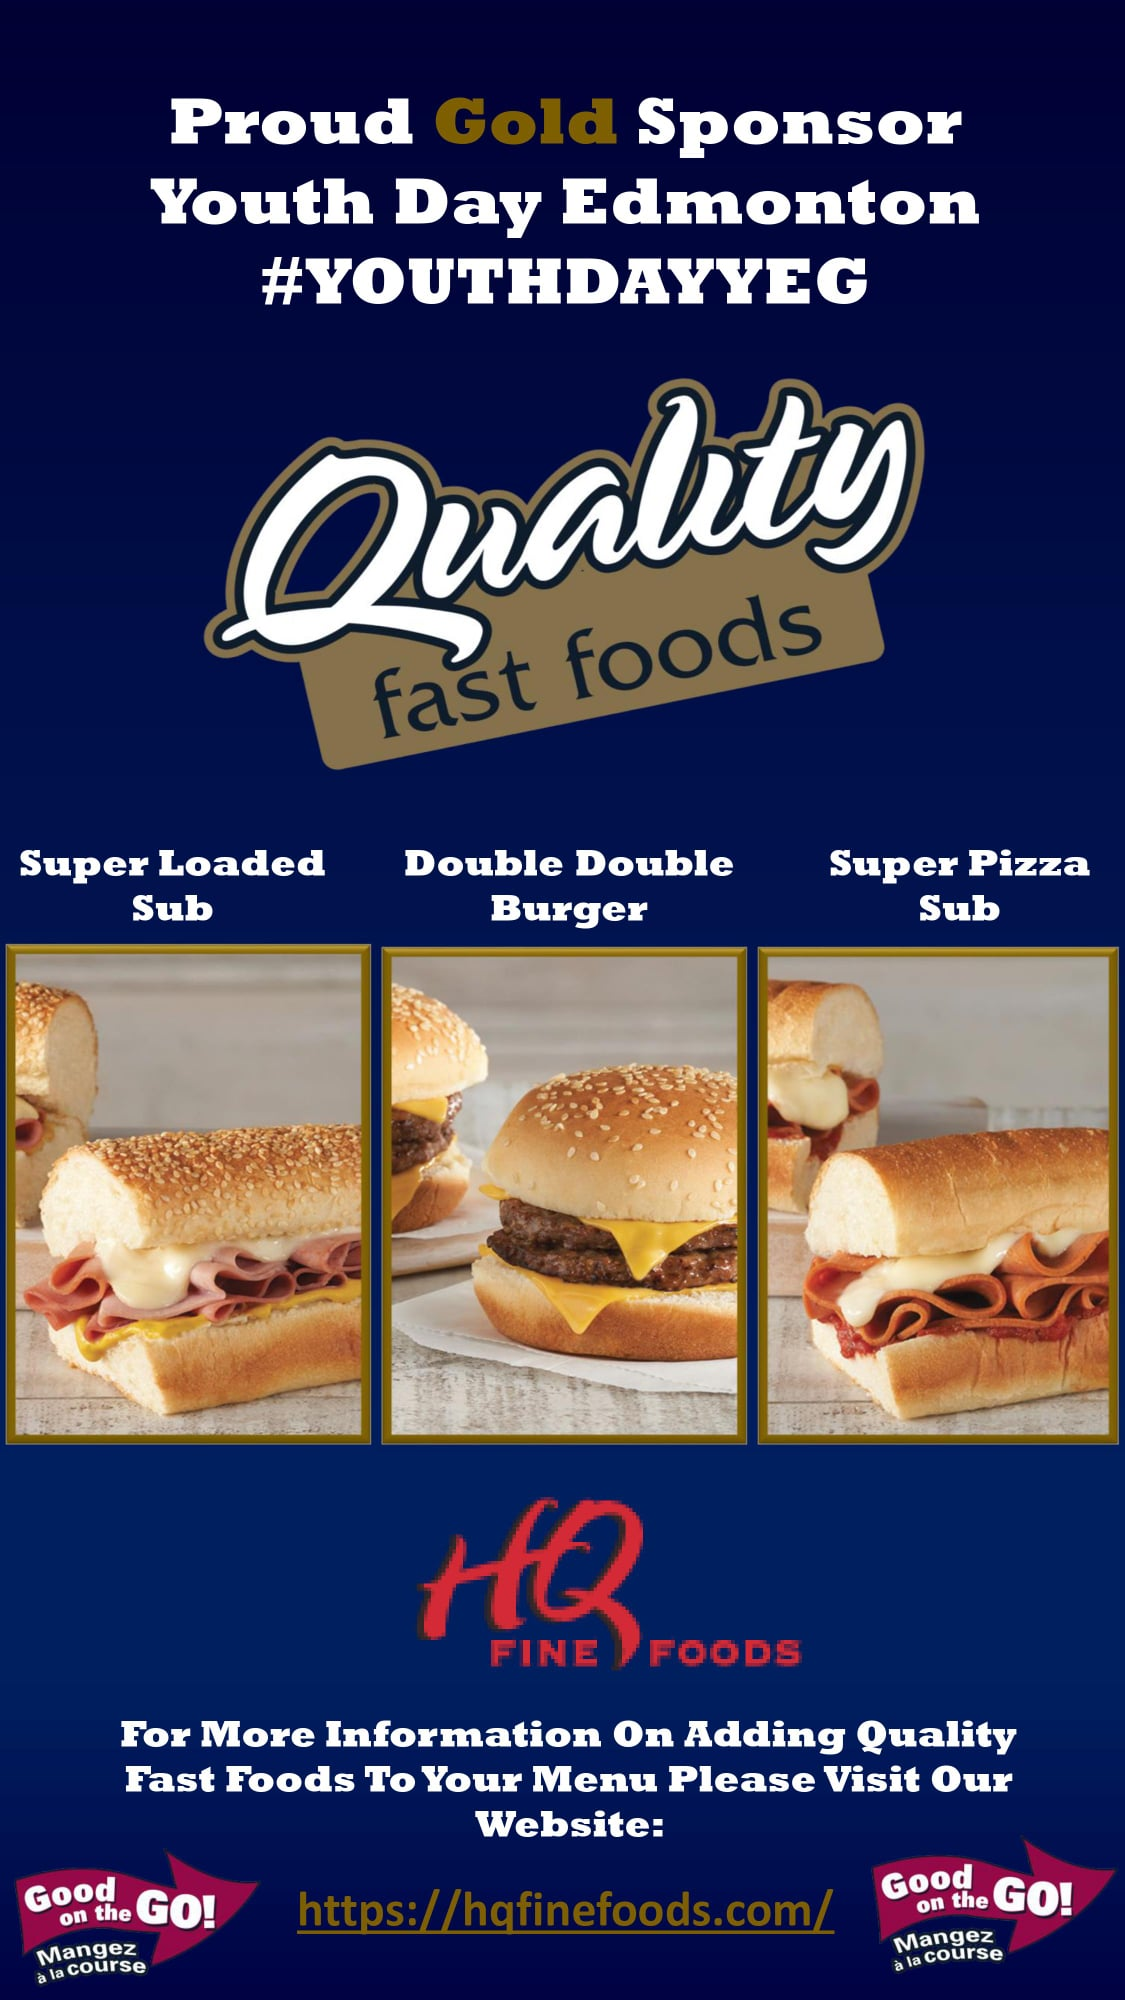 Image showcasing several Quality Fast Foods sandwiches and their role as a Gold sponsor for Youth Day Edmonton